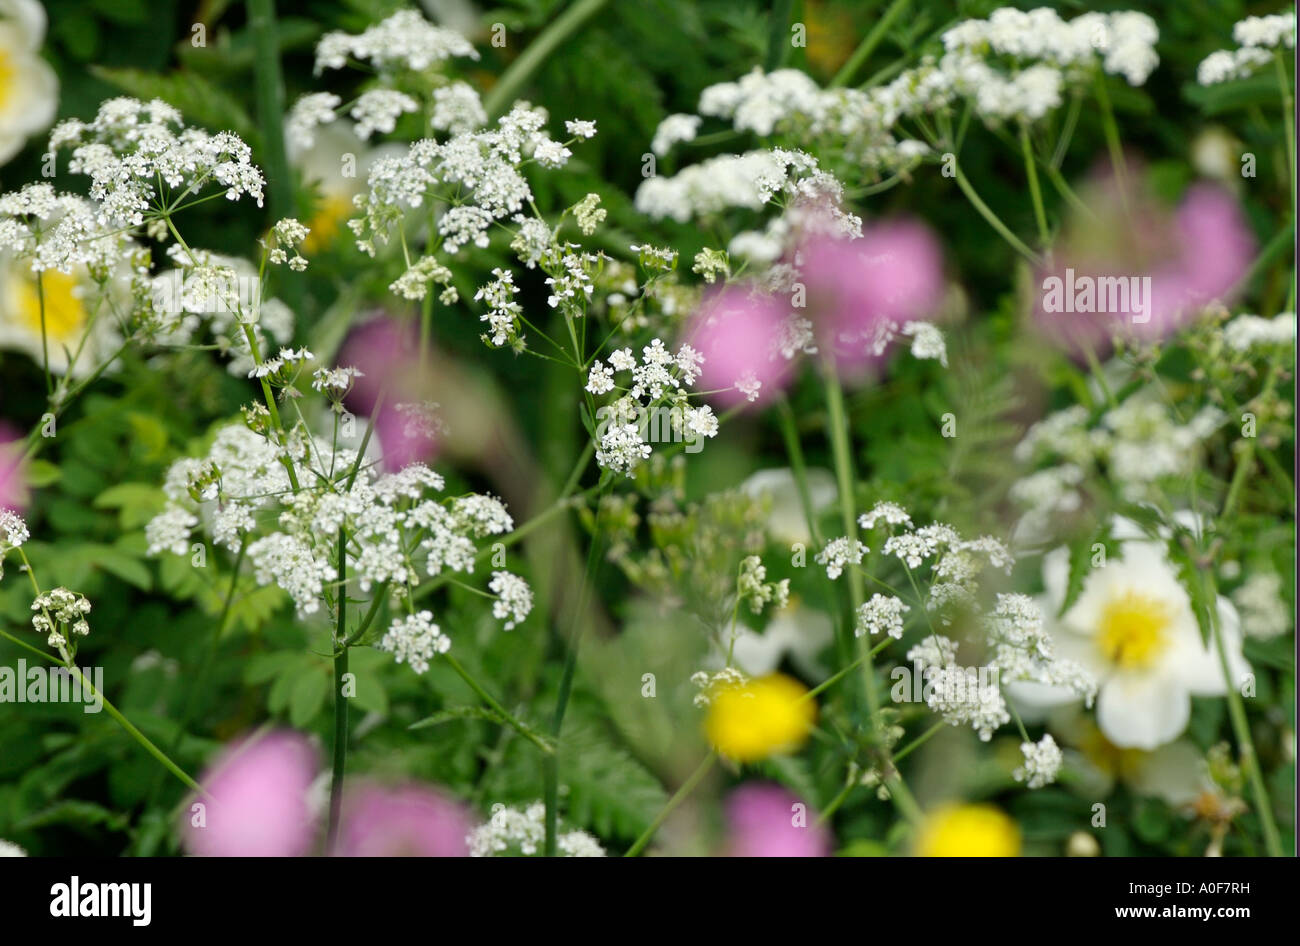 Hedgerows spring flowers stock photos hedgerows spring flowers common british wild flowers of the hedgerows spring flowers cow parsley burnett roses mightylinksfo